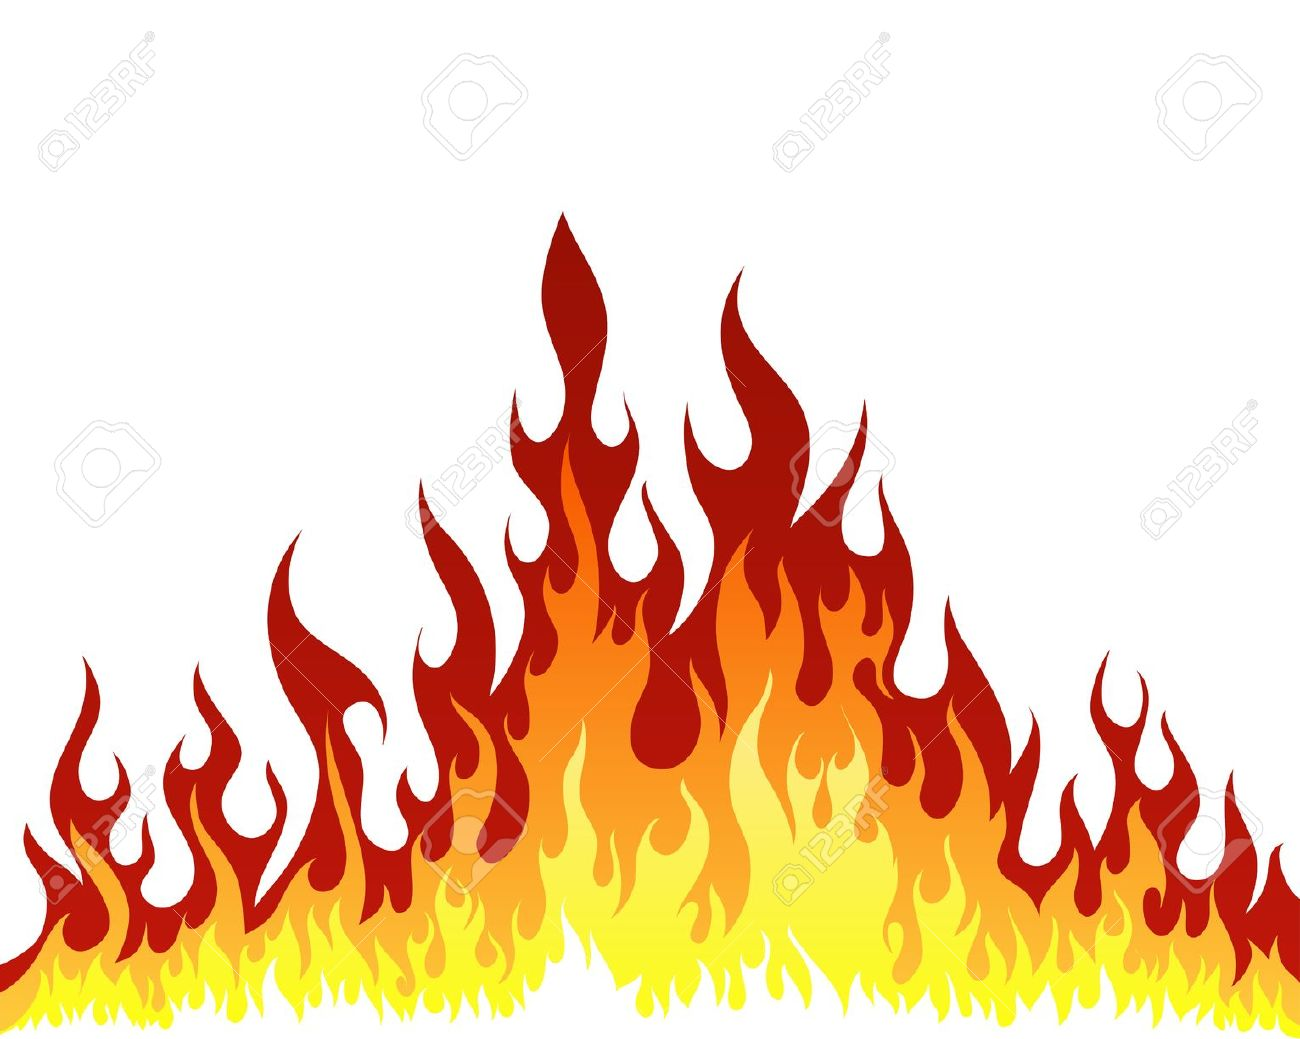 flame clipart